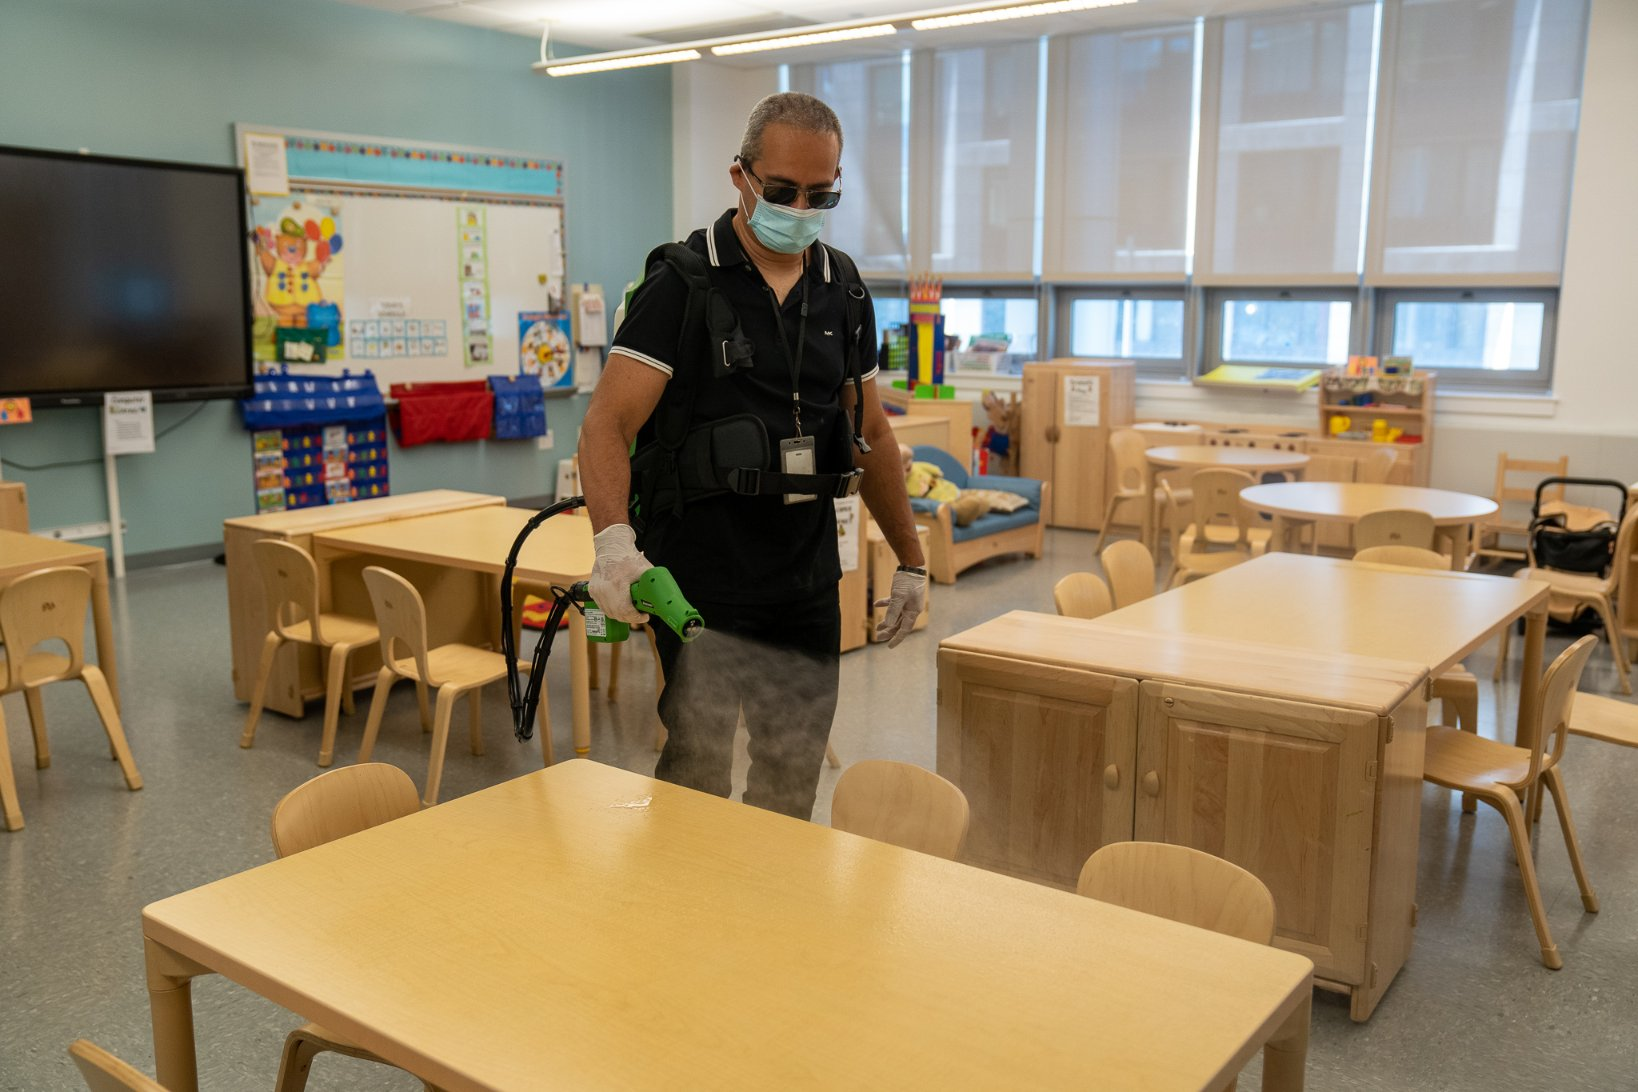 The city Department of Education released this photo of an employee spraying a school desk and cleaning.